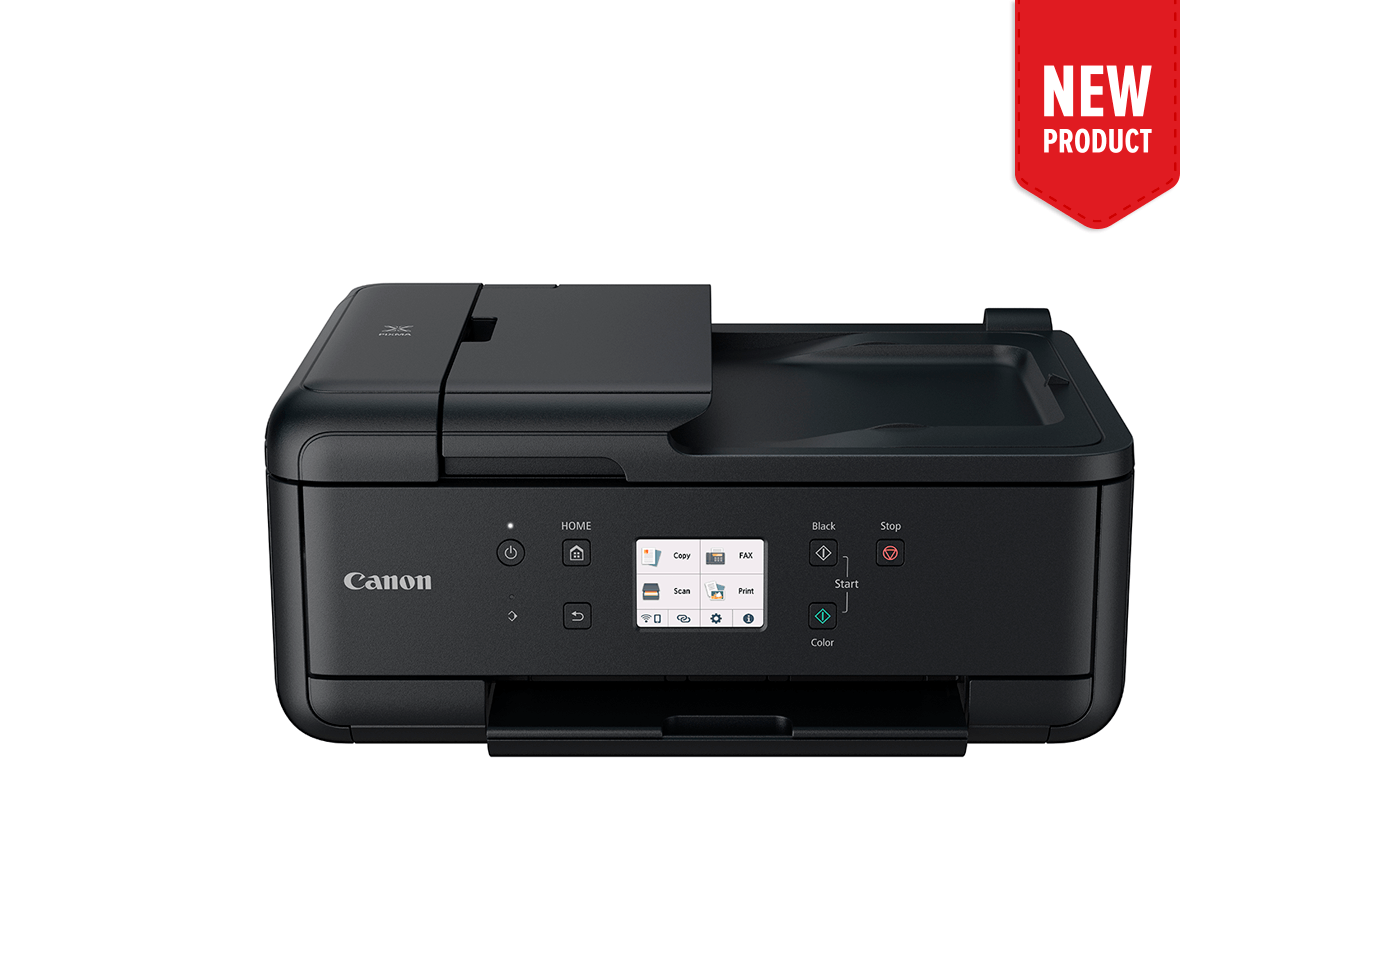 Product image of the new PIXMA HOME OFFICE TR7660 printer